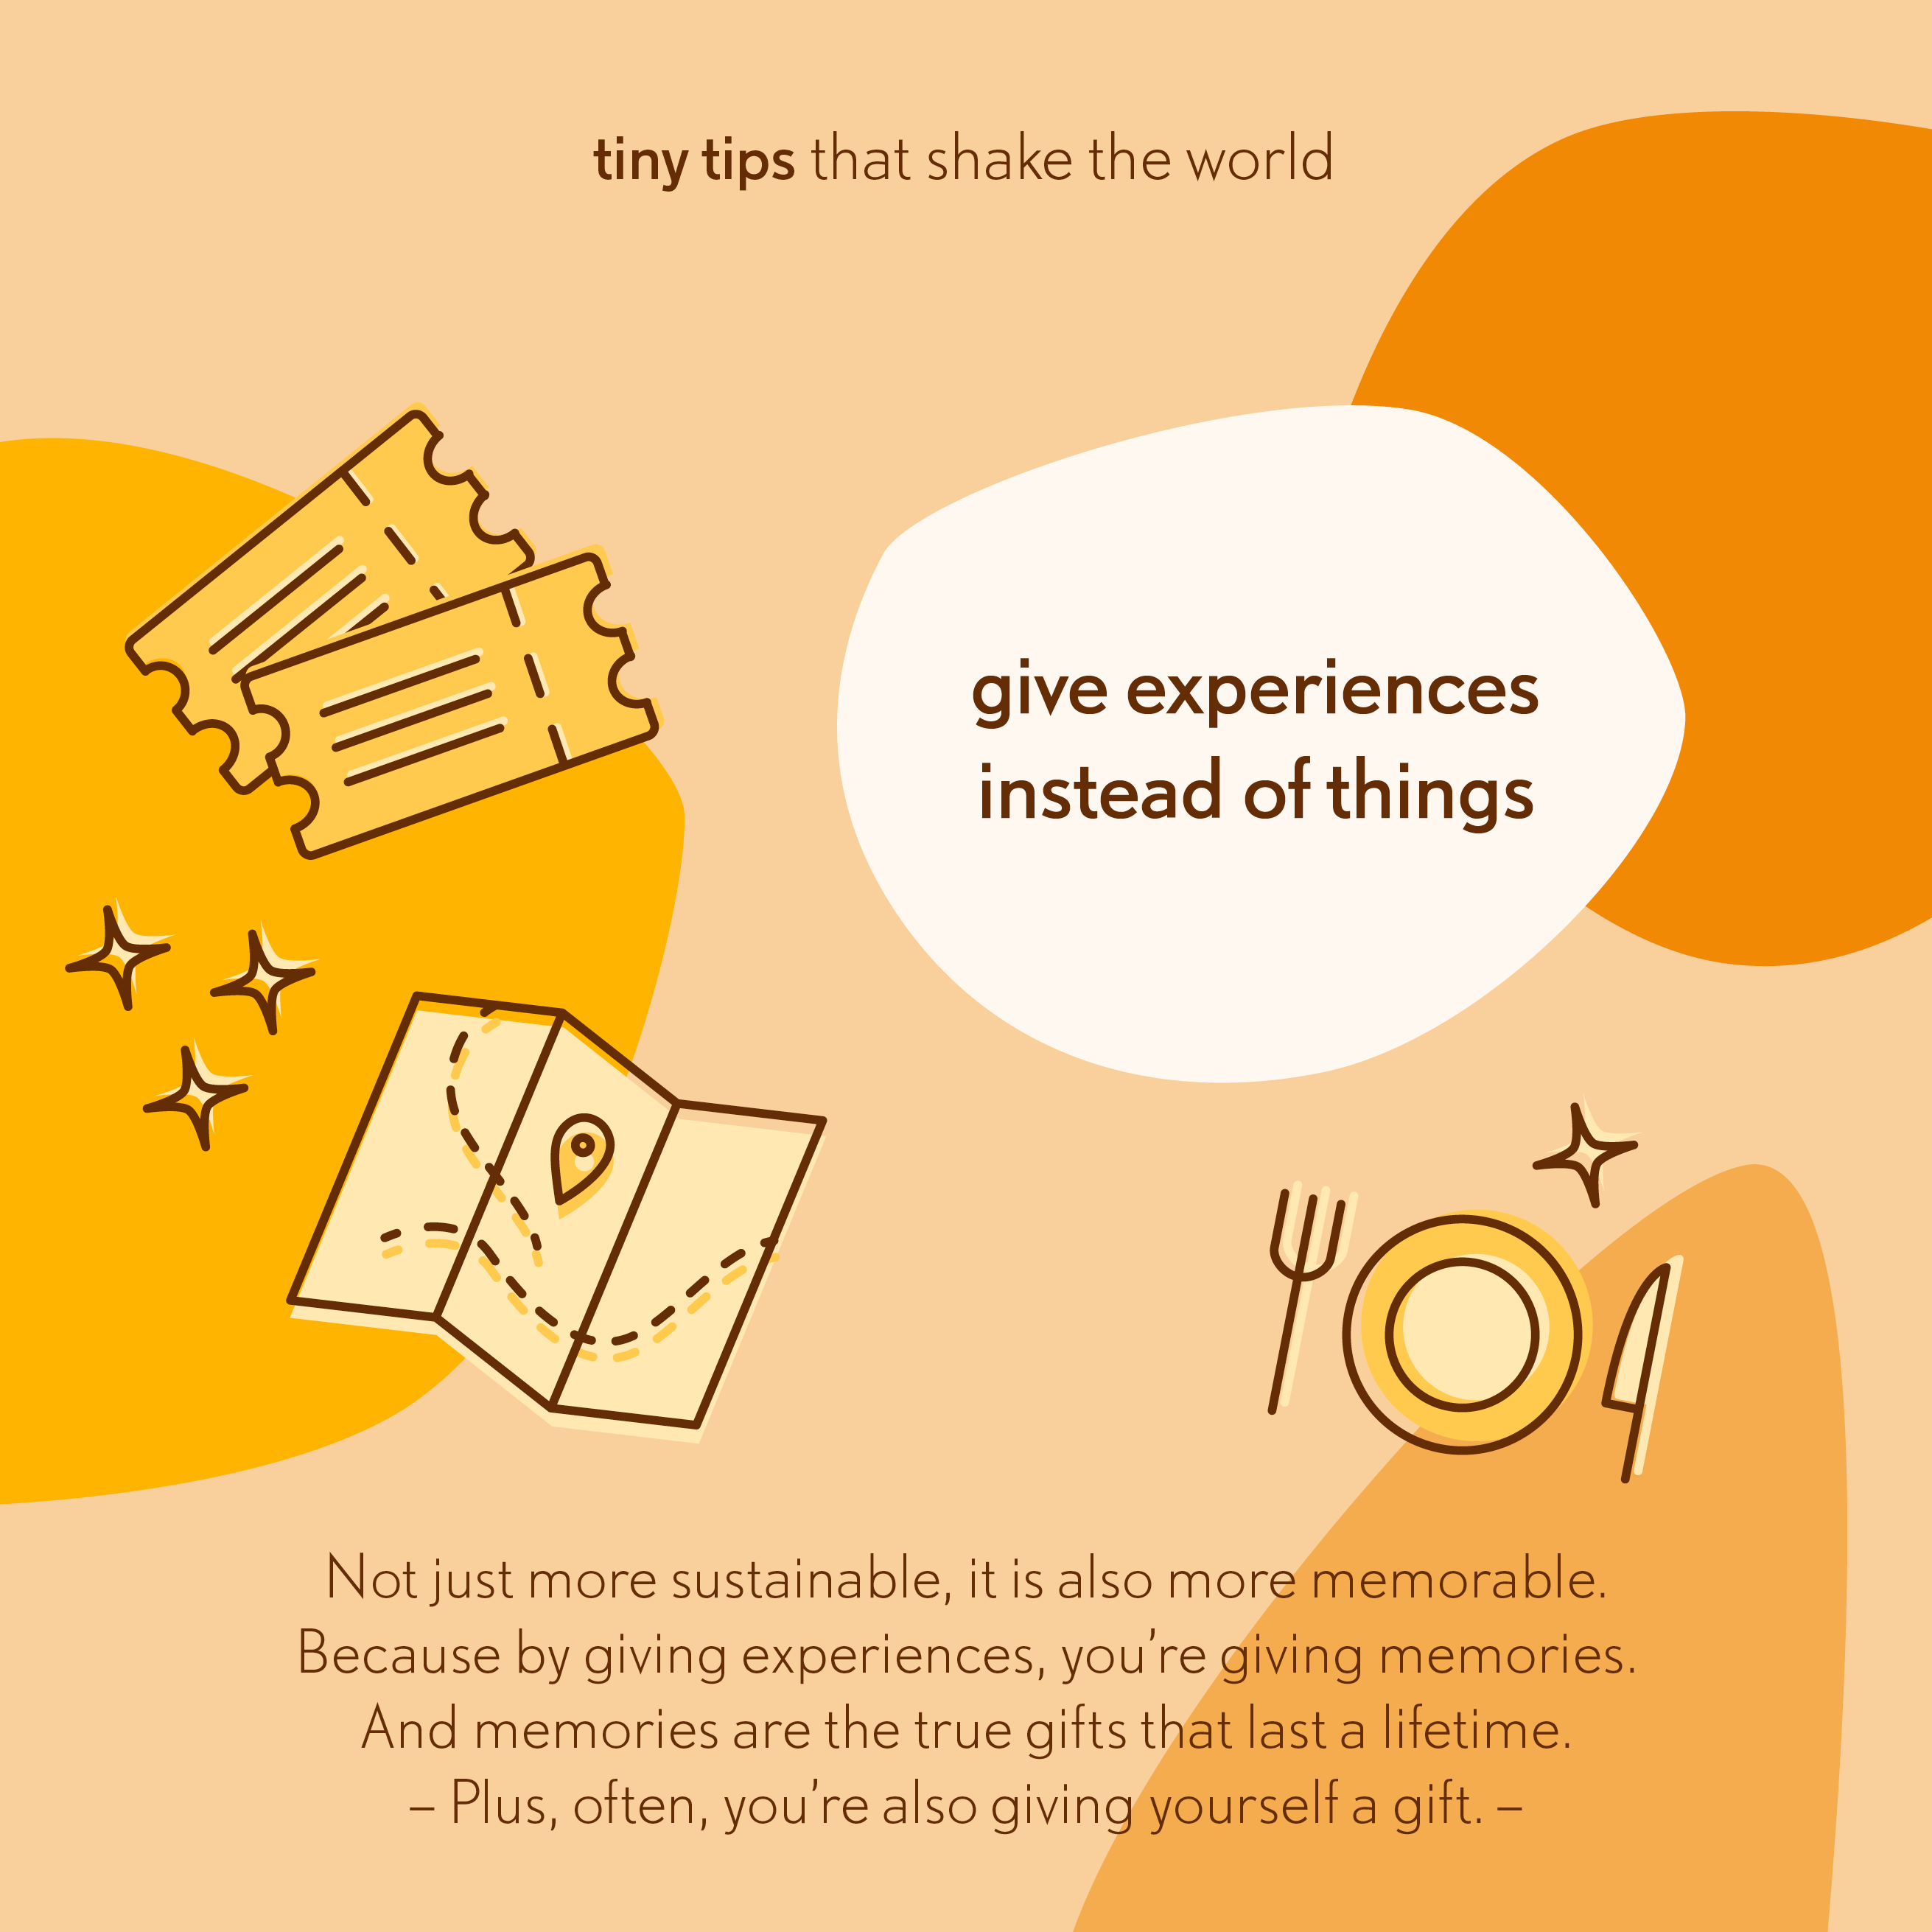 20191218 Give experiences instead of things Tiny tips that shake the world 2